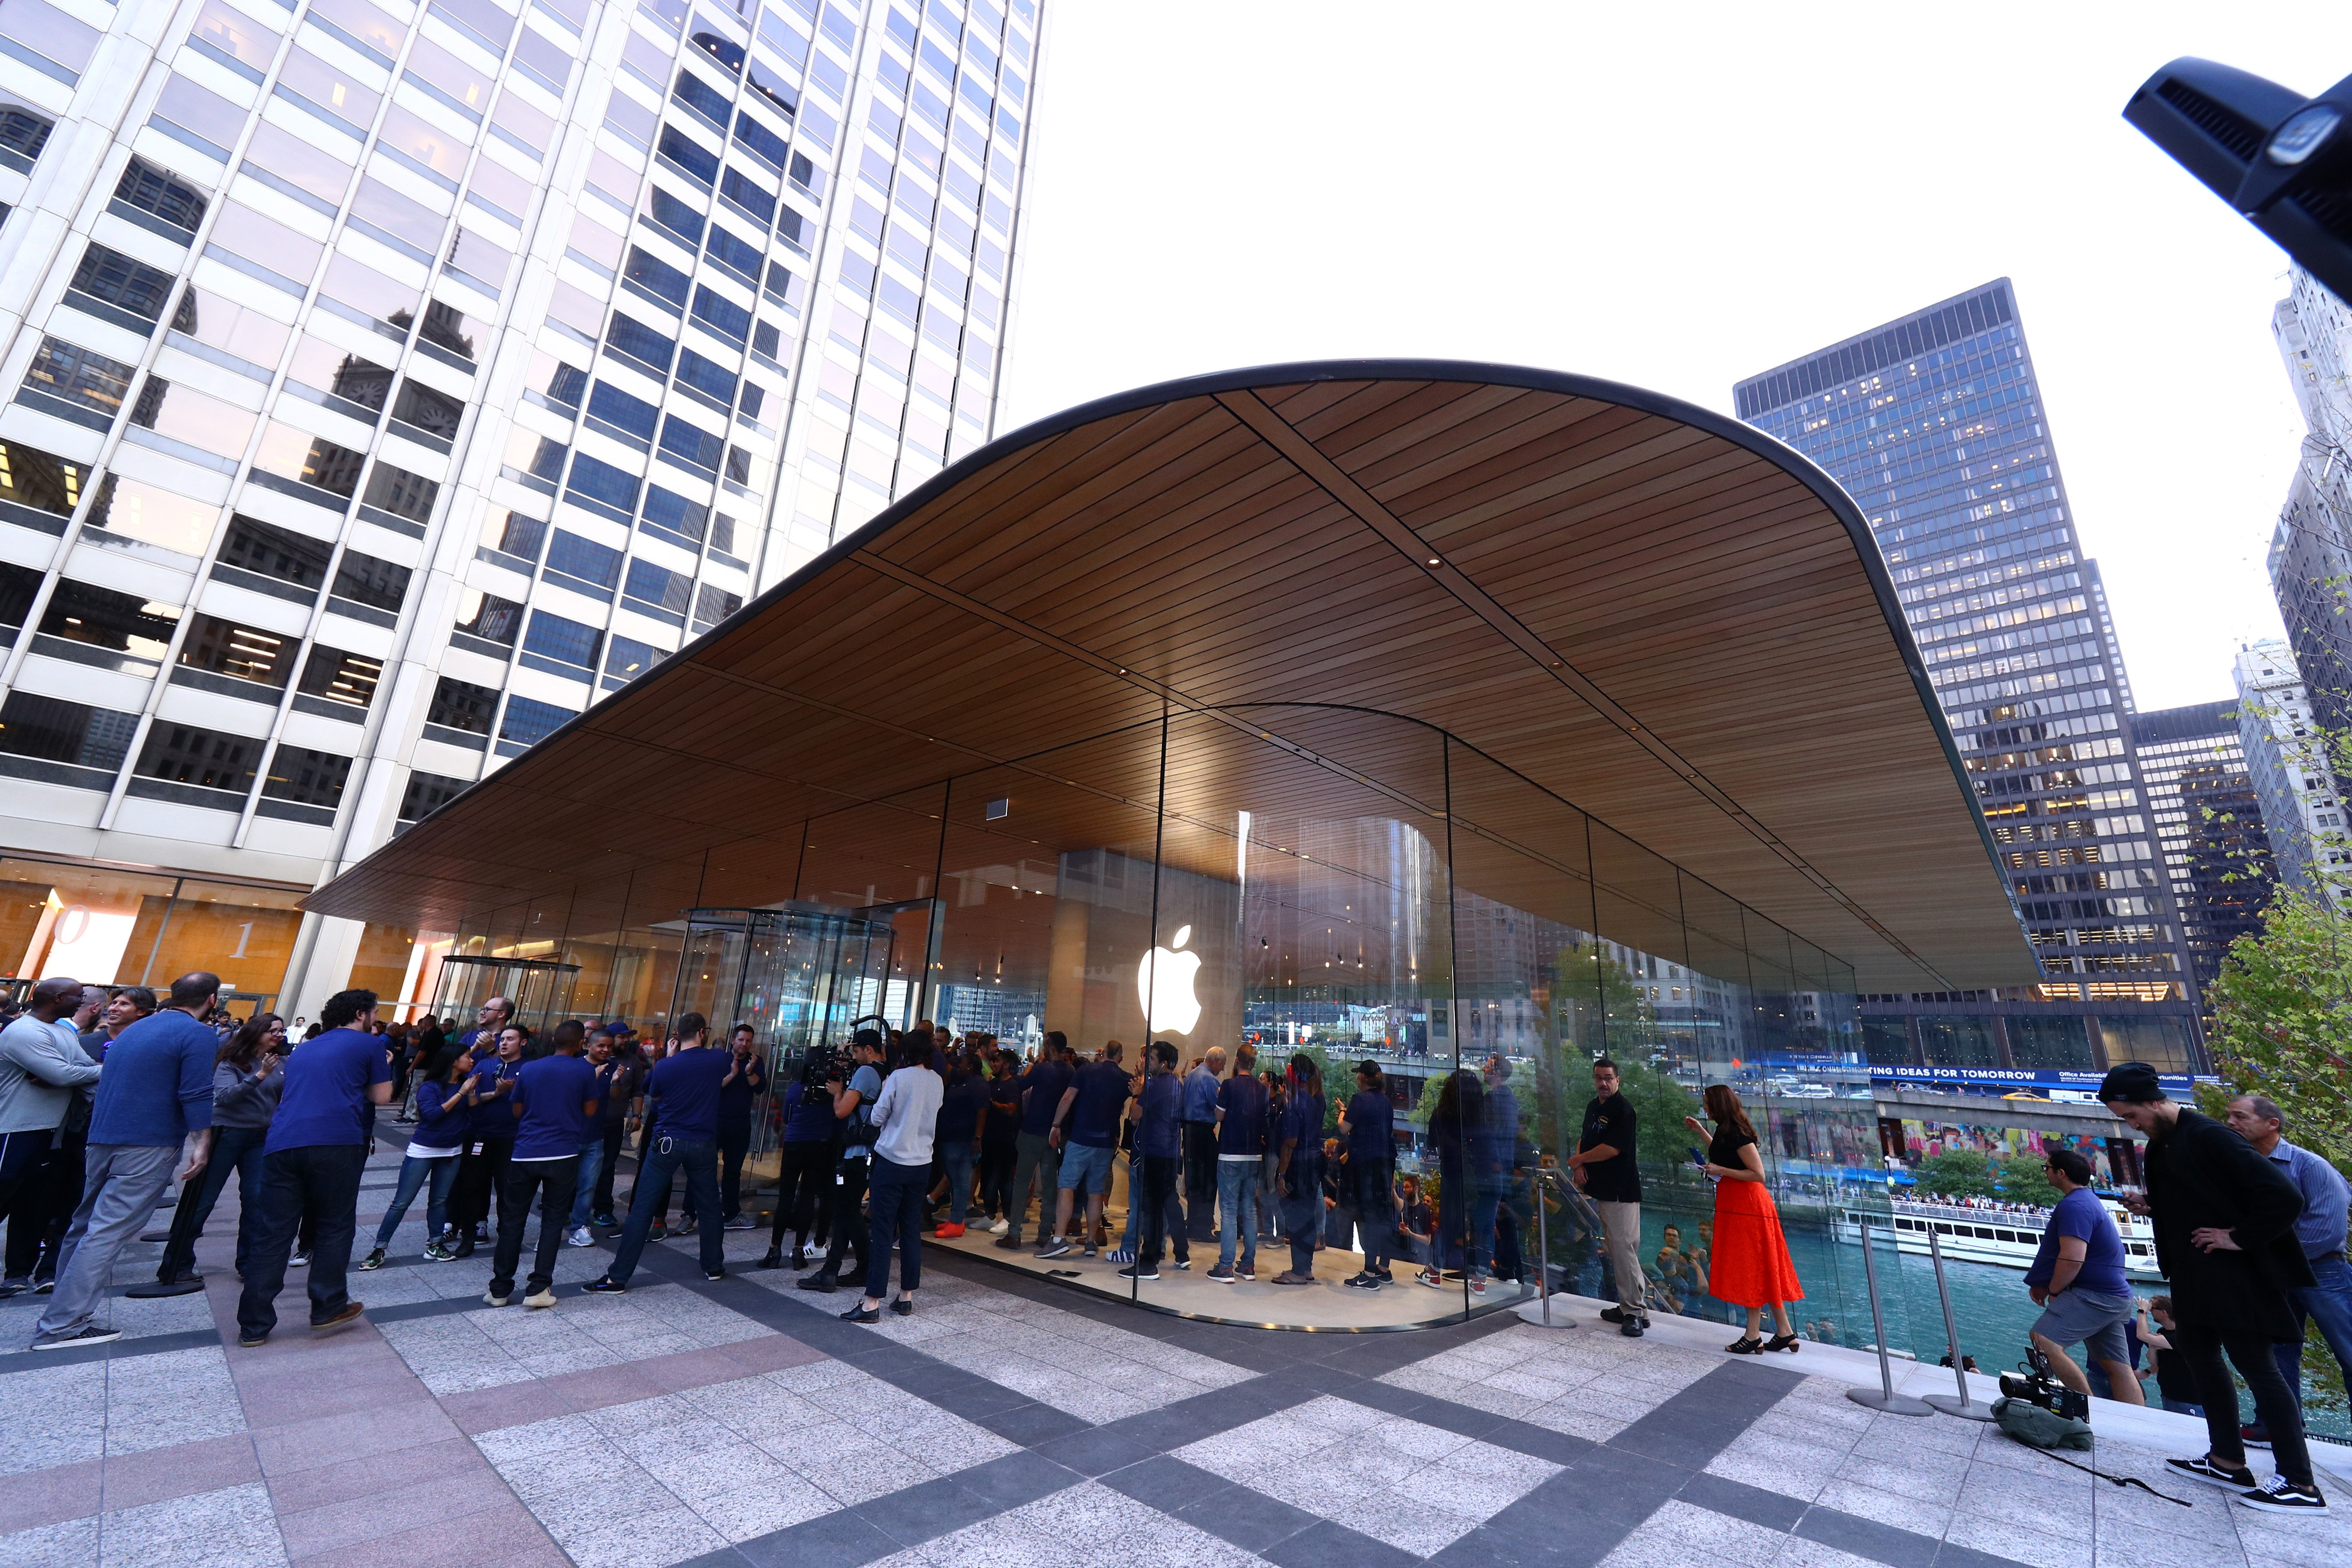 Opening of the Macbook-shaped roof tops' Apple Store in Chicago